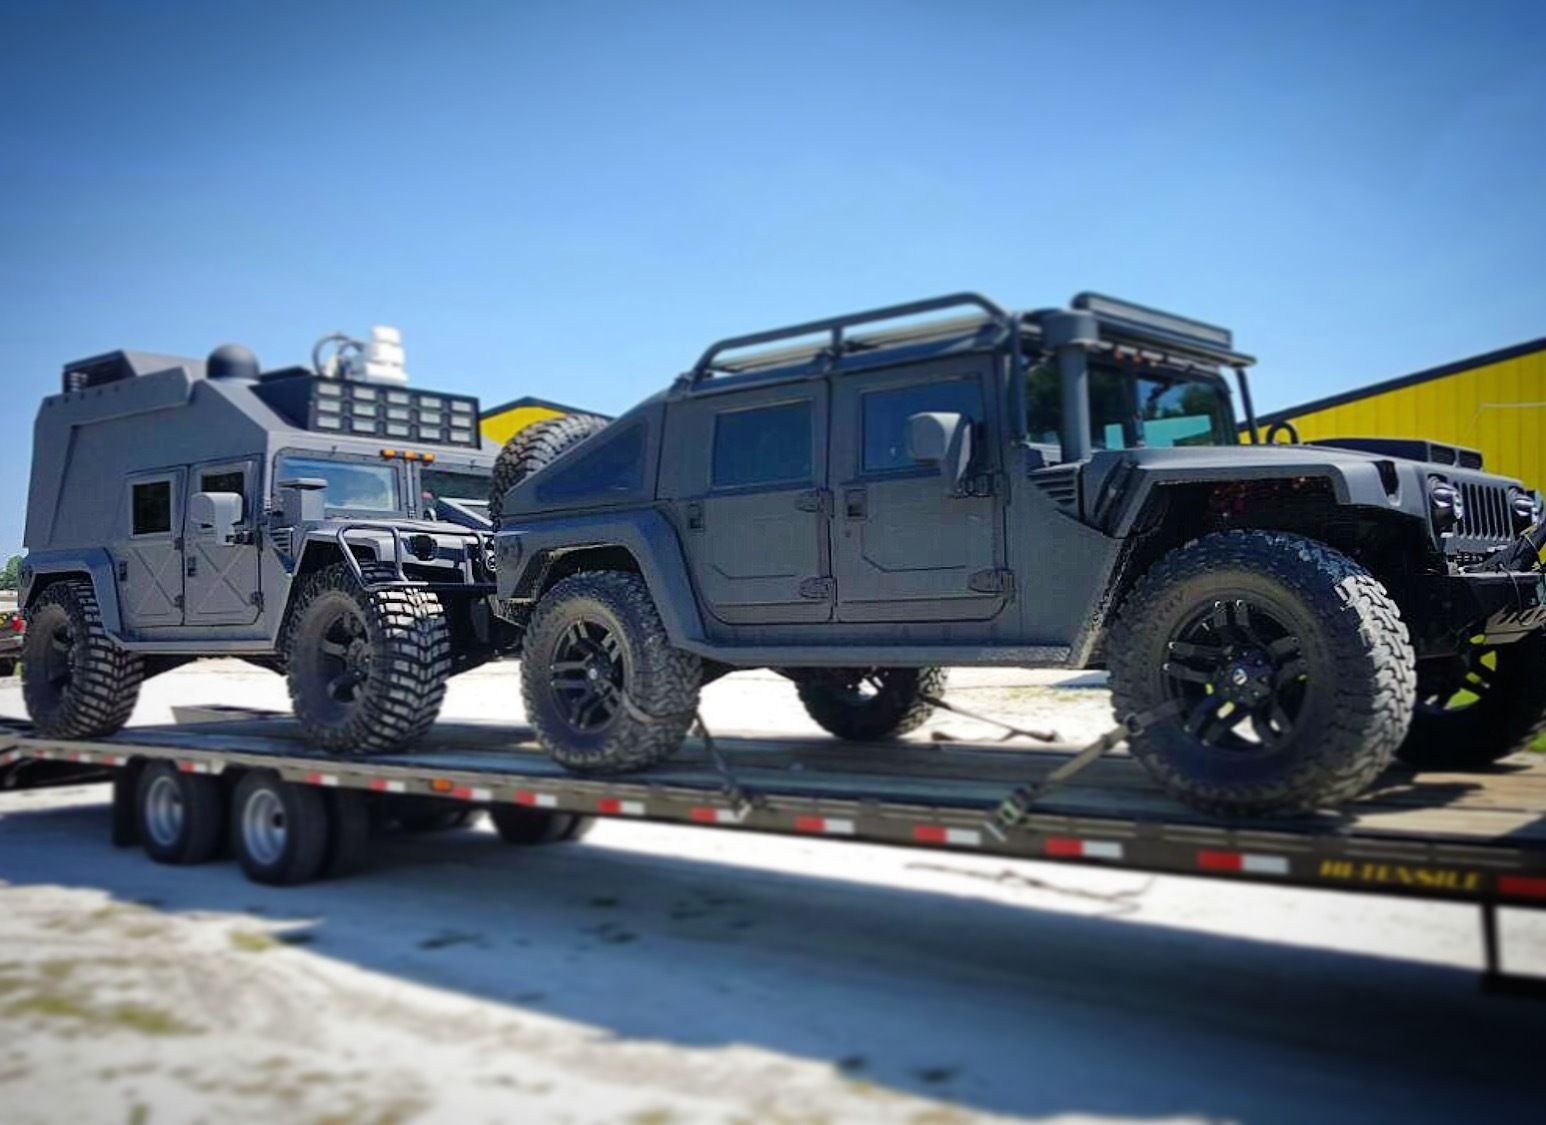 2014 hummer h1 search and rescue in ebay motors cars trucks hummer